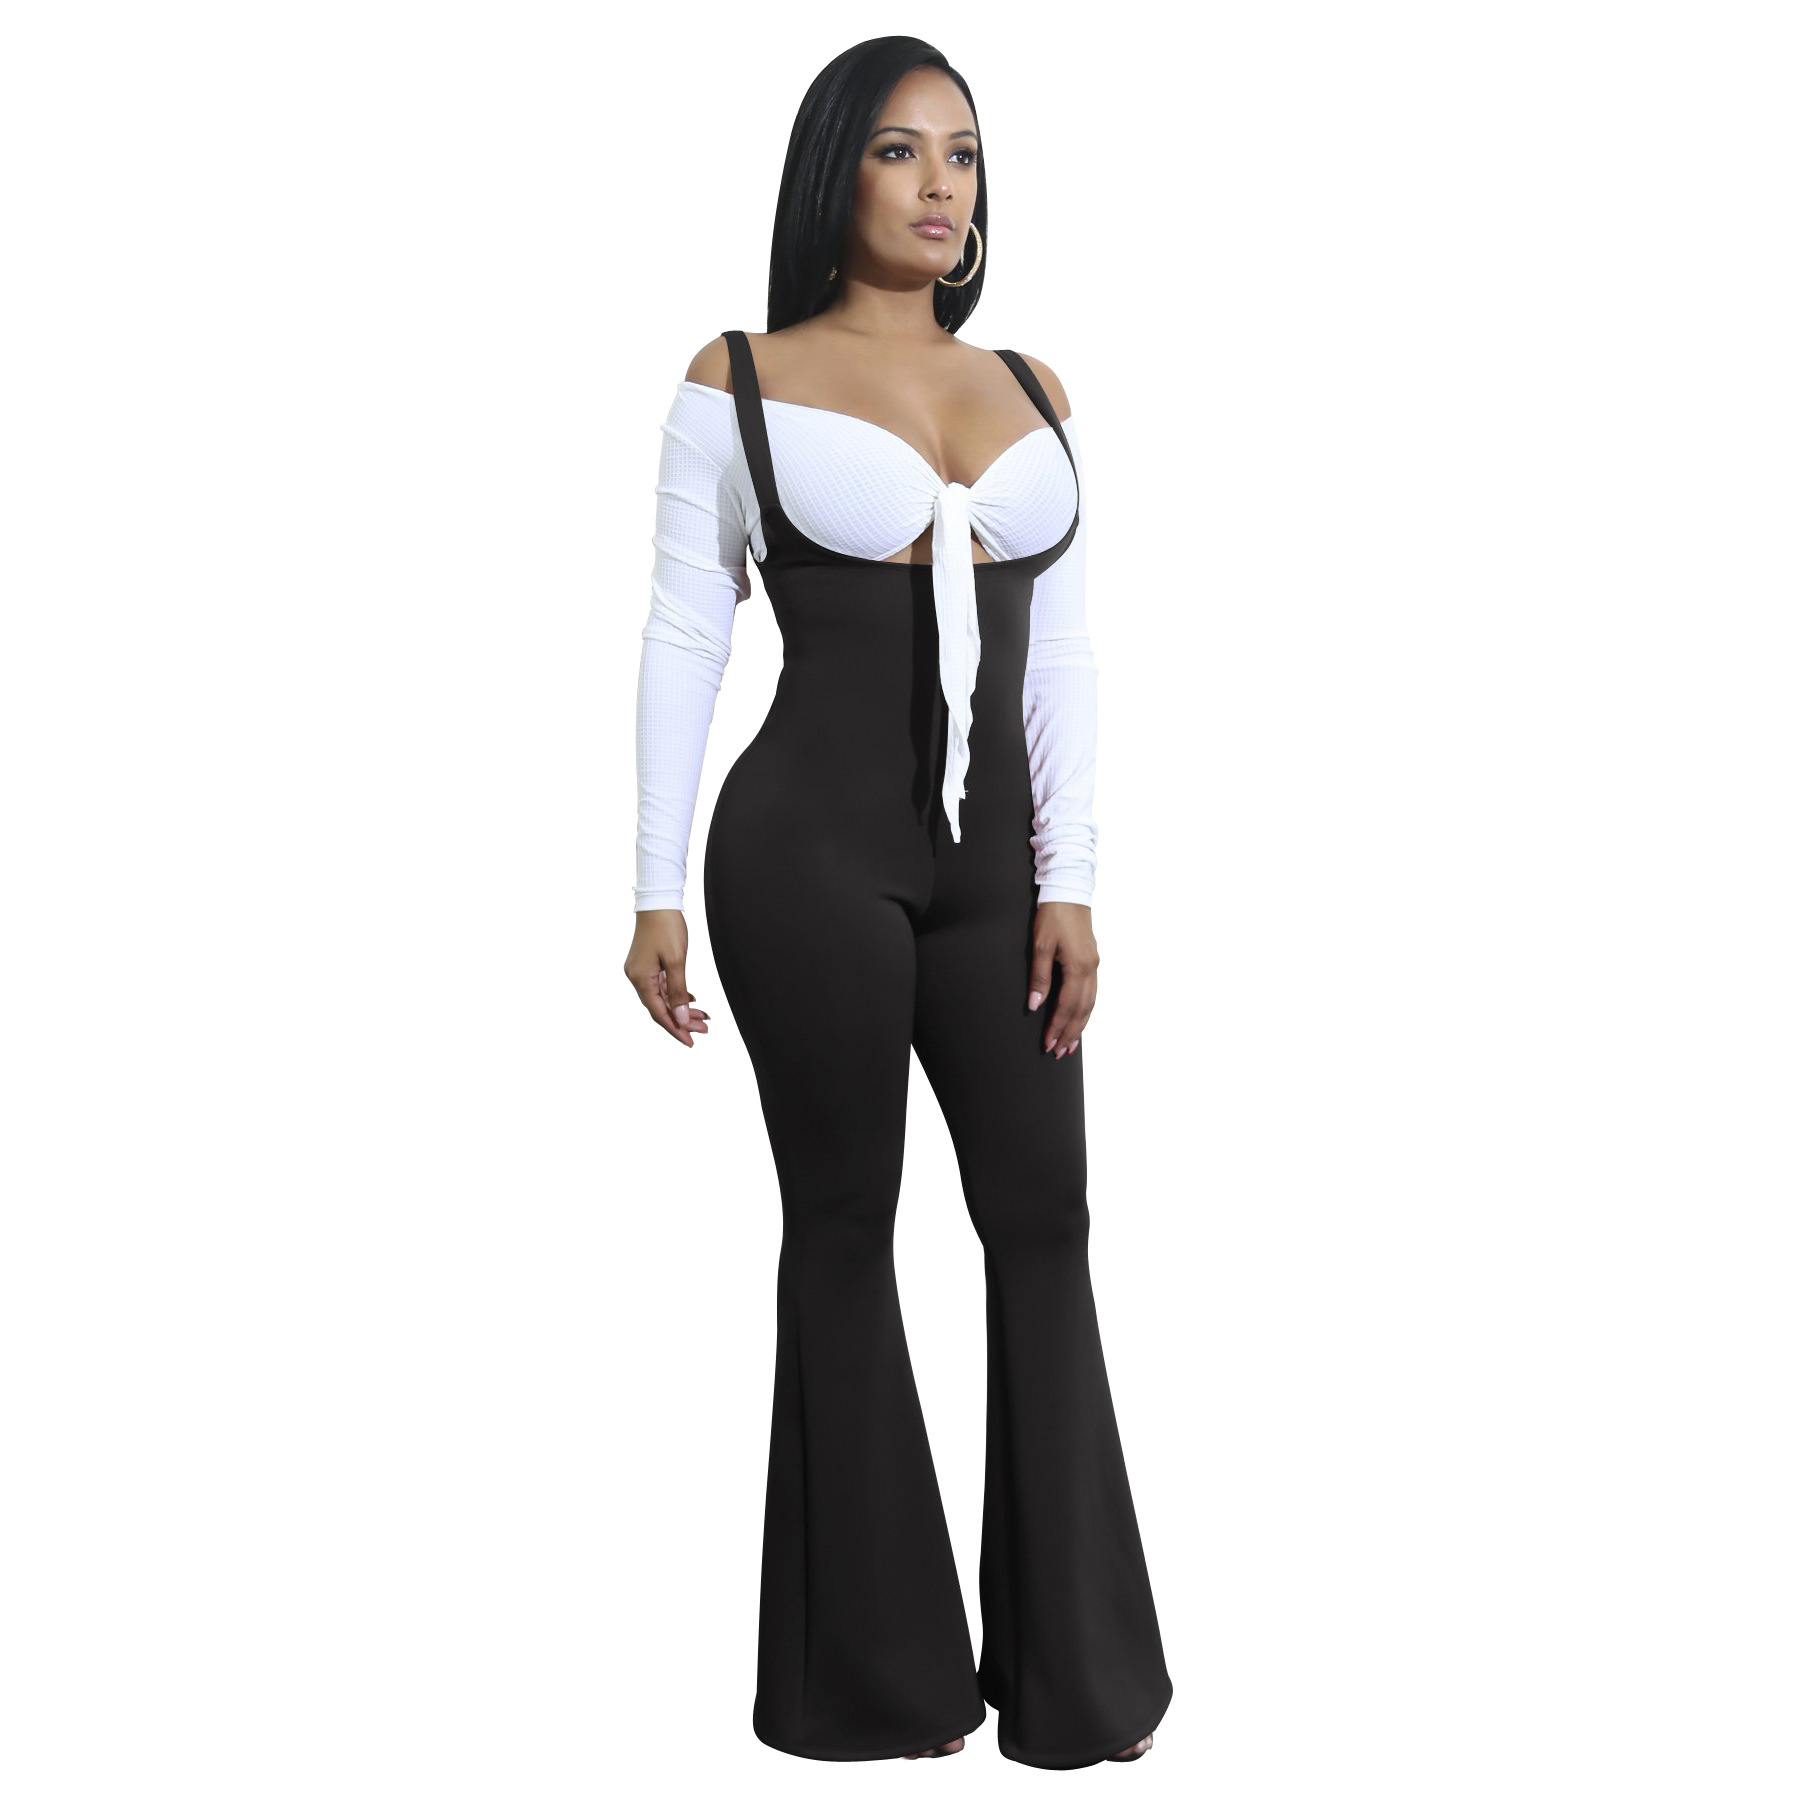 High Waist Pants Women Sexy Spaghetti Strap Jumpsuits Casual Solid Flared Long Pants Women High Stretch Slim Rompers Overalls